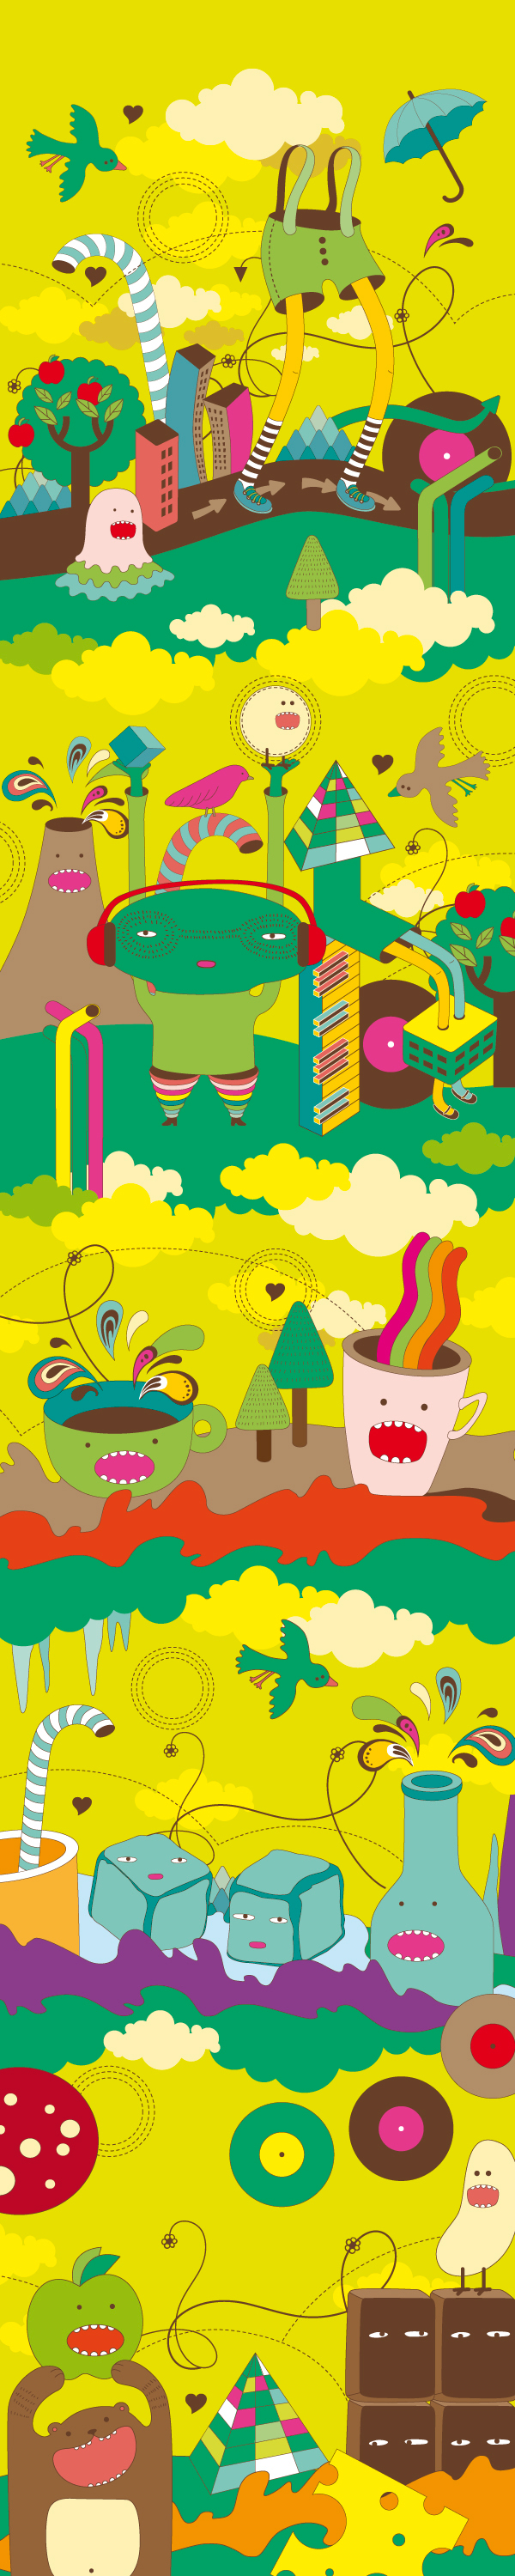 Illustrated World Of Simple Express On Behance